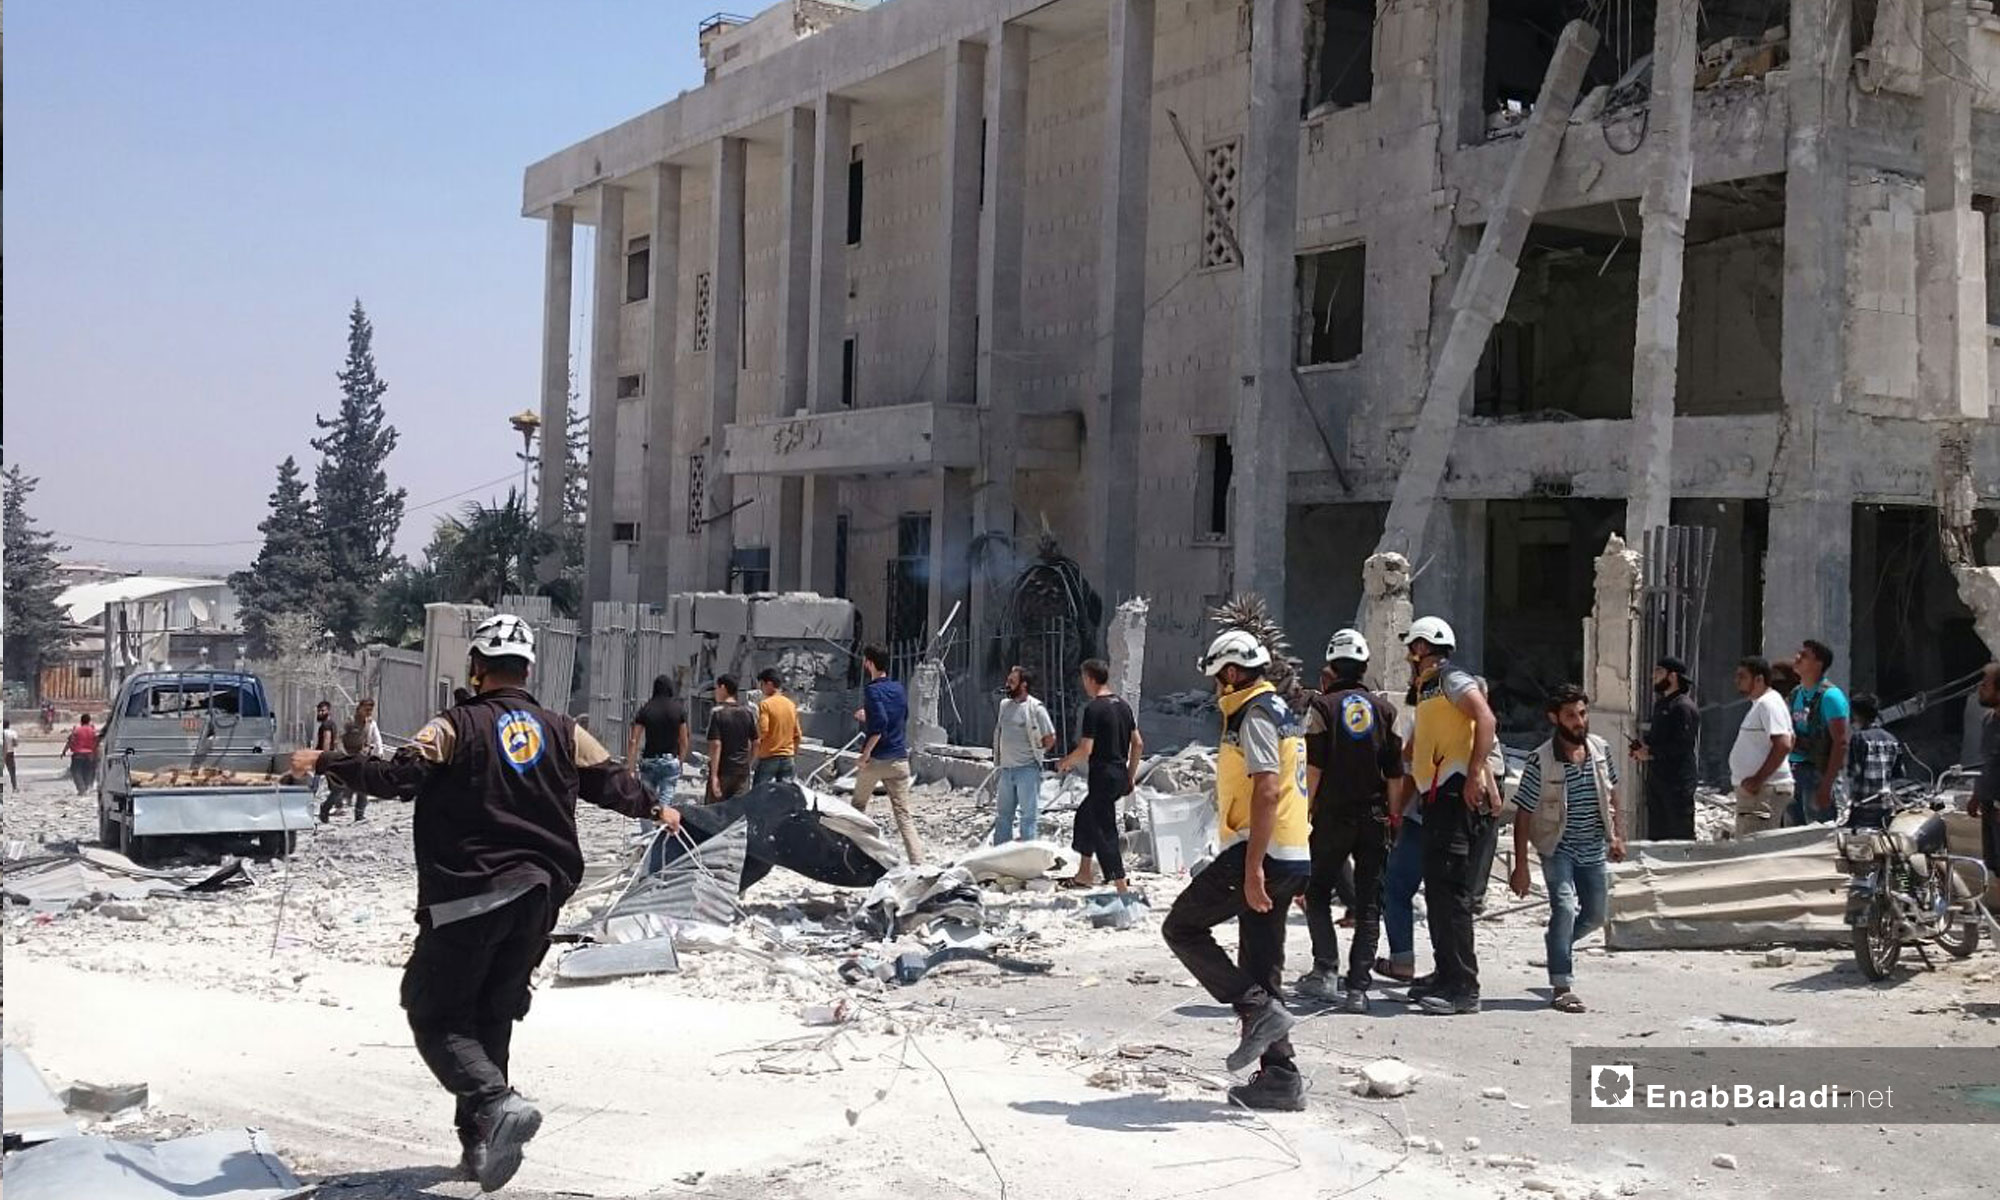 The Civil Defense teams following the explosion of a car bomb in front of the Central Bank, Idlib – August 2, 2018 (The Civil Defense teams following the explosion of a car bomb in front of the Central Bank, Idlib – August 2, 2018 (Enab Baladi) Baladi)